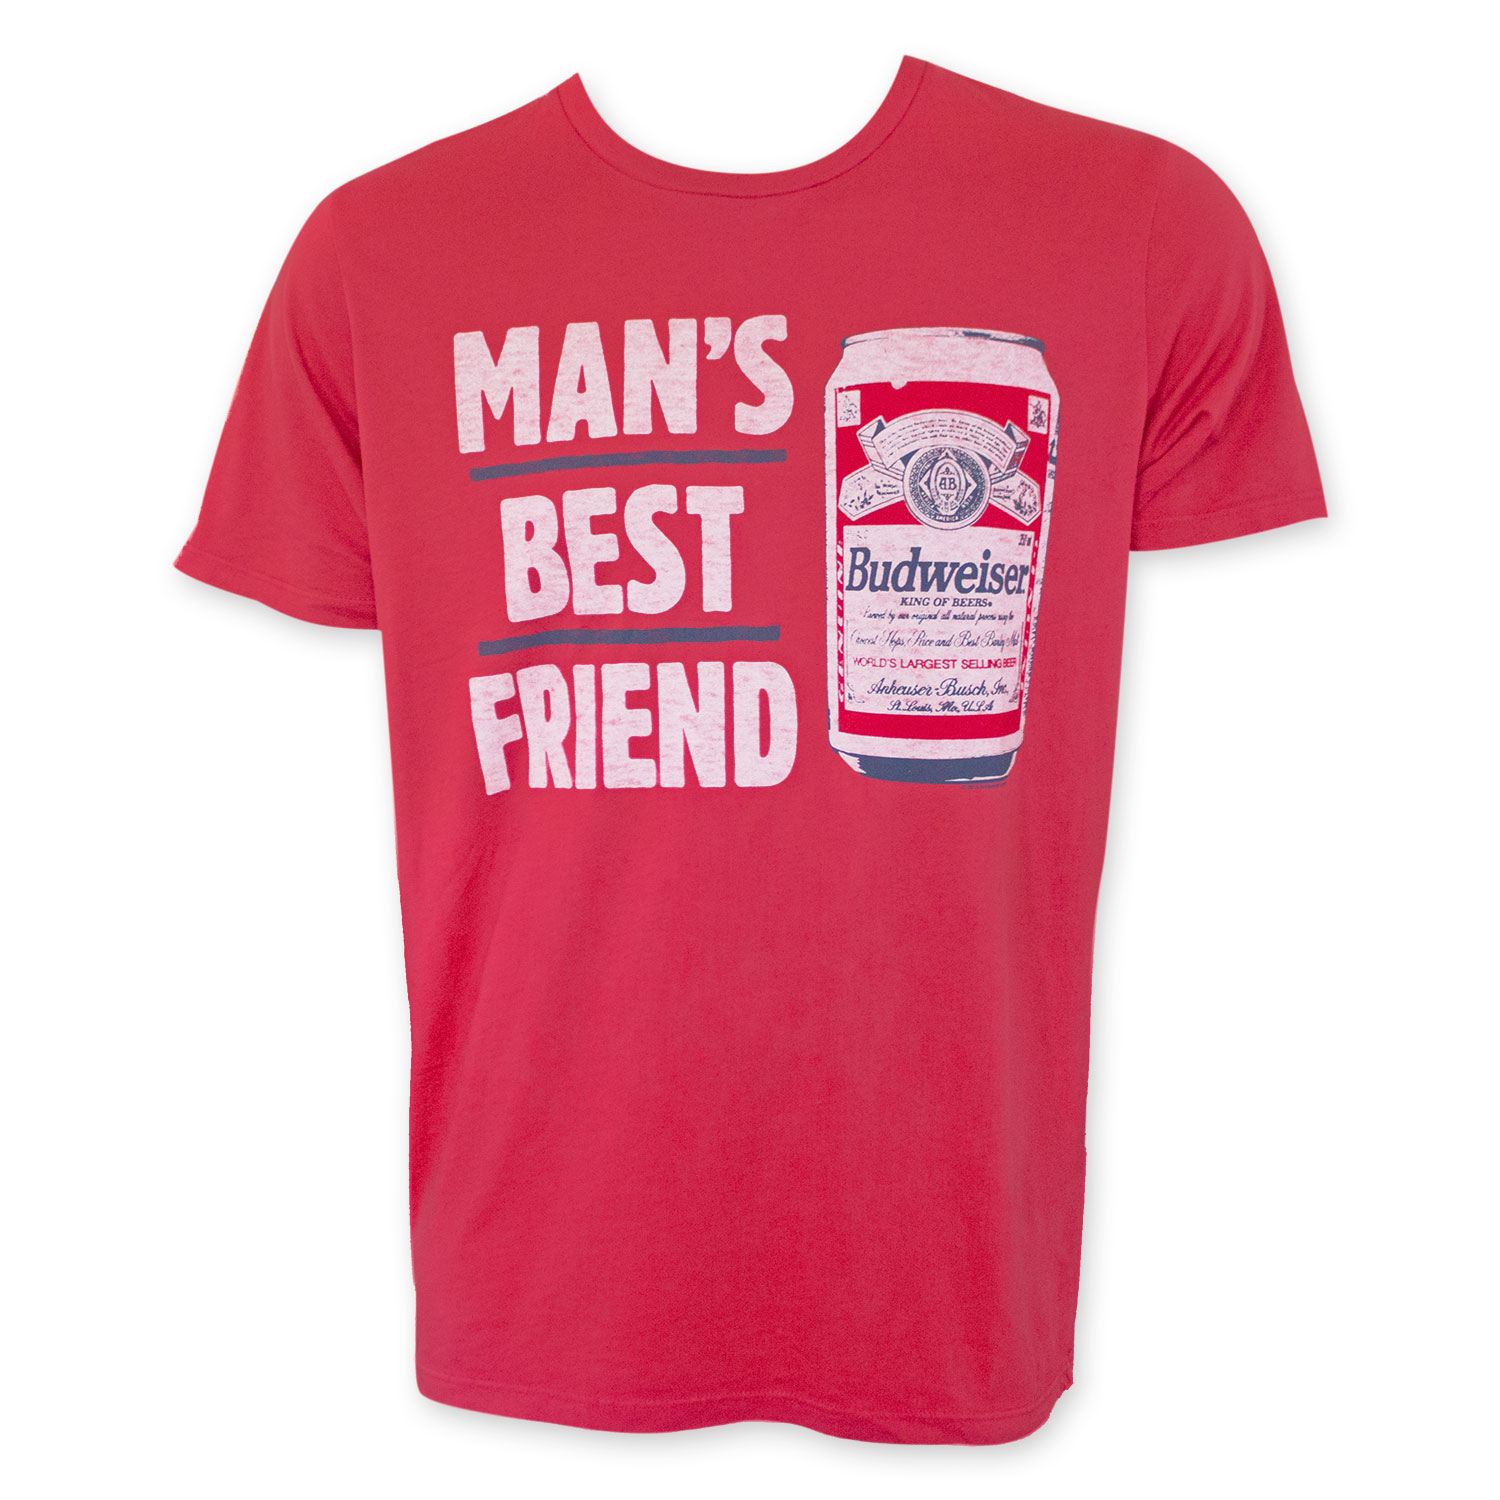 Budweiser Man's Best Friend T-Shirt